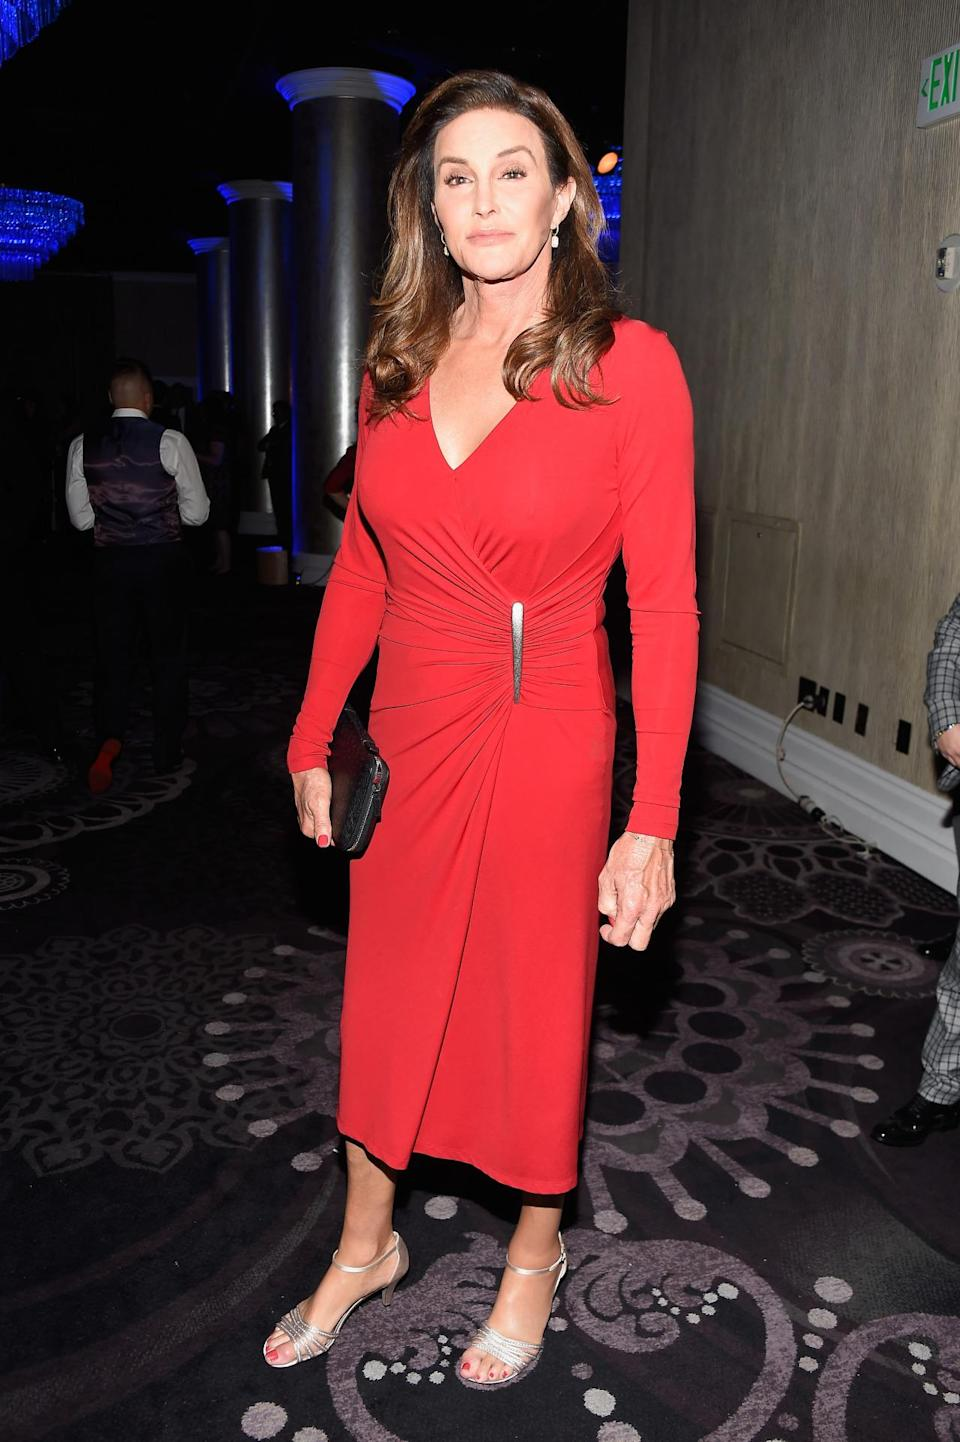 """<p>Is red Caitlyn Jenner's color? It sure looks like it! The reality star turned up at the GLAAD Media Awards in a midi-length dress with ruching. She even matched her mani and pedi to the look and accessorized with a black clutch and silver heels. In addition to receiving an award for best reality show for <i>I Am Cait</i>, news also broke that she'll be appearing in the next season of Amazon's <i>Transparent. </i>The show's director, Jill Soloway, called the casting """"a dream come true.""""<i> (Photo: Getty Images)</i></p>"""